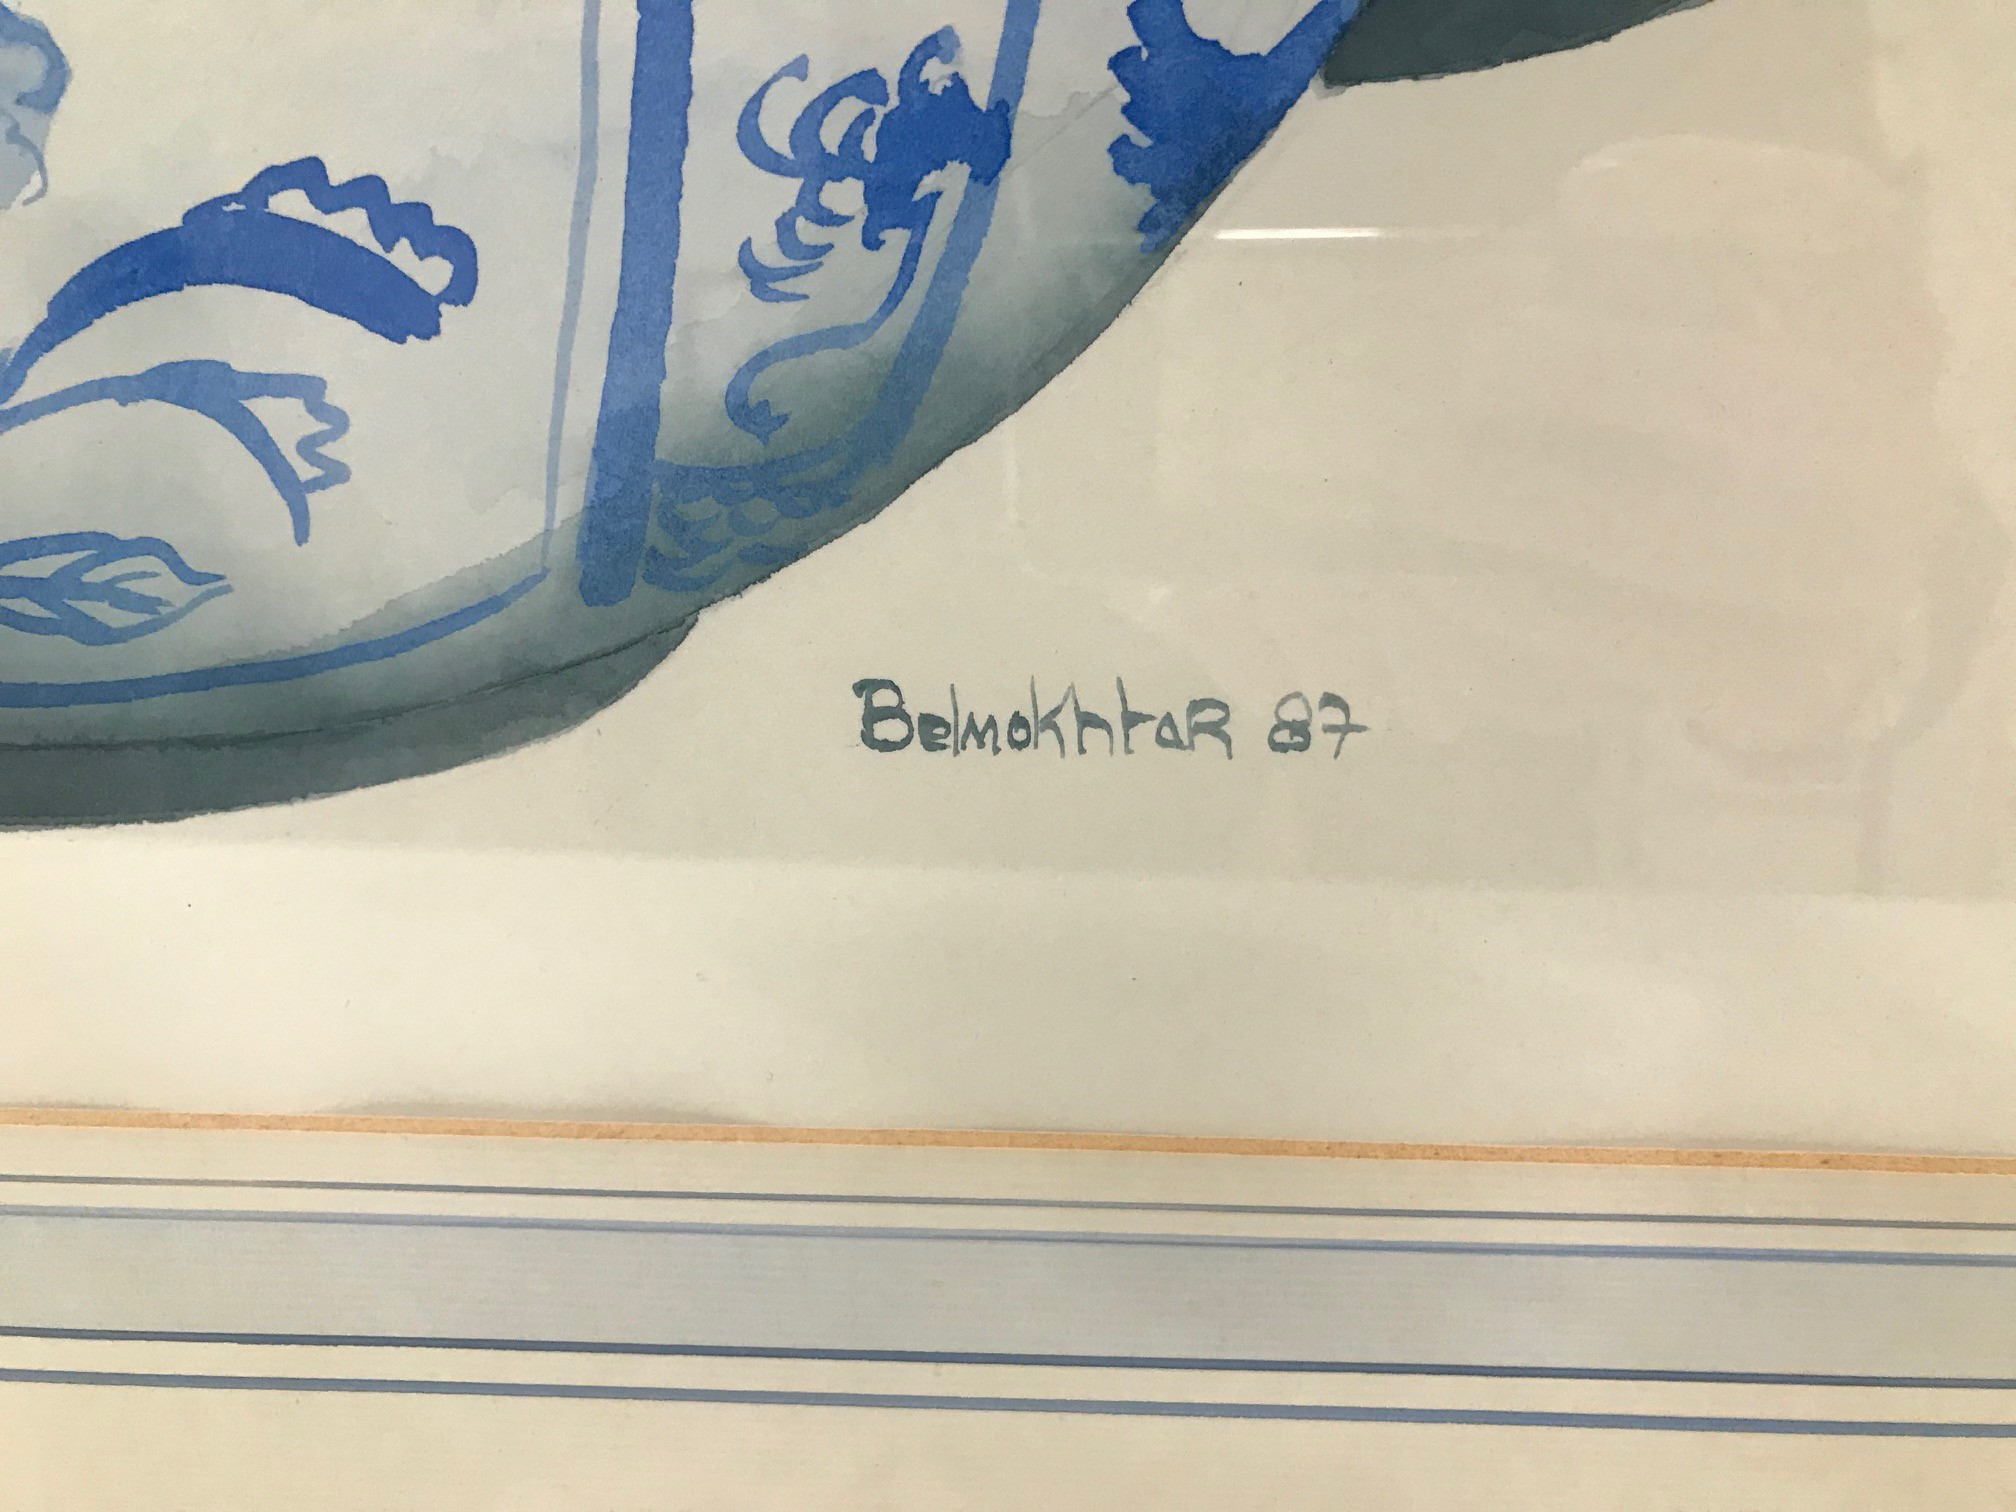 Mandy Belmokhtar 20th century gouache on paper painting, 73cm by 55cm, blue and white Chinese - Image 2 of 2